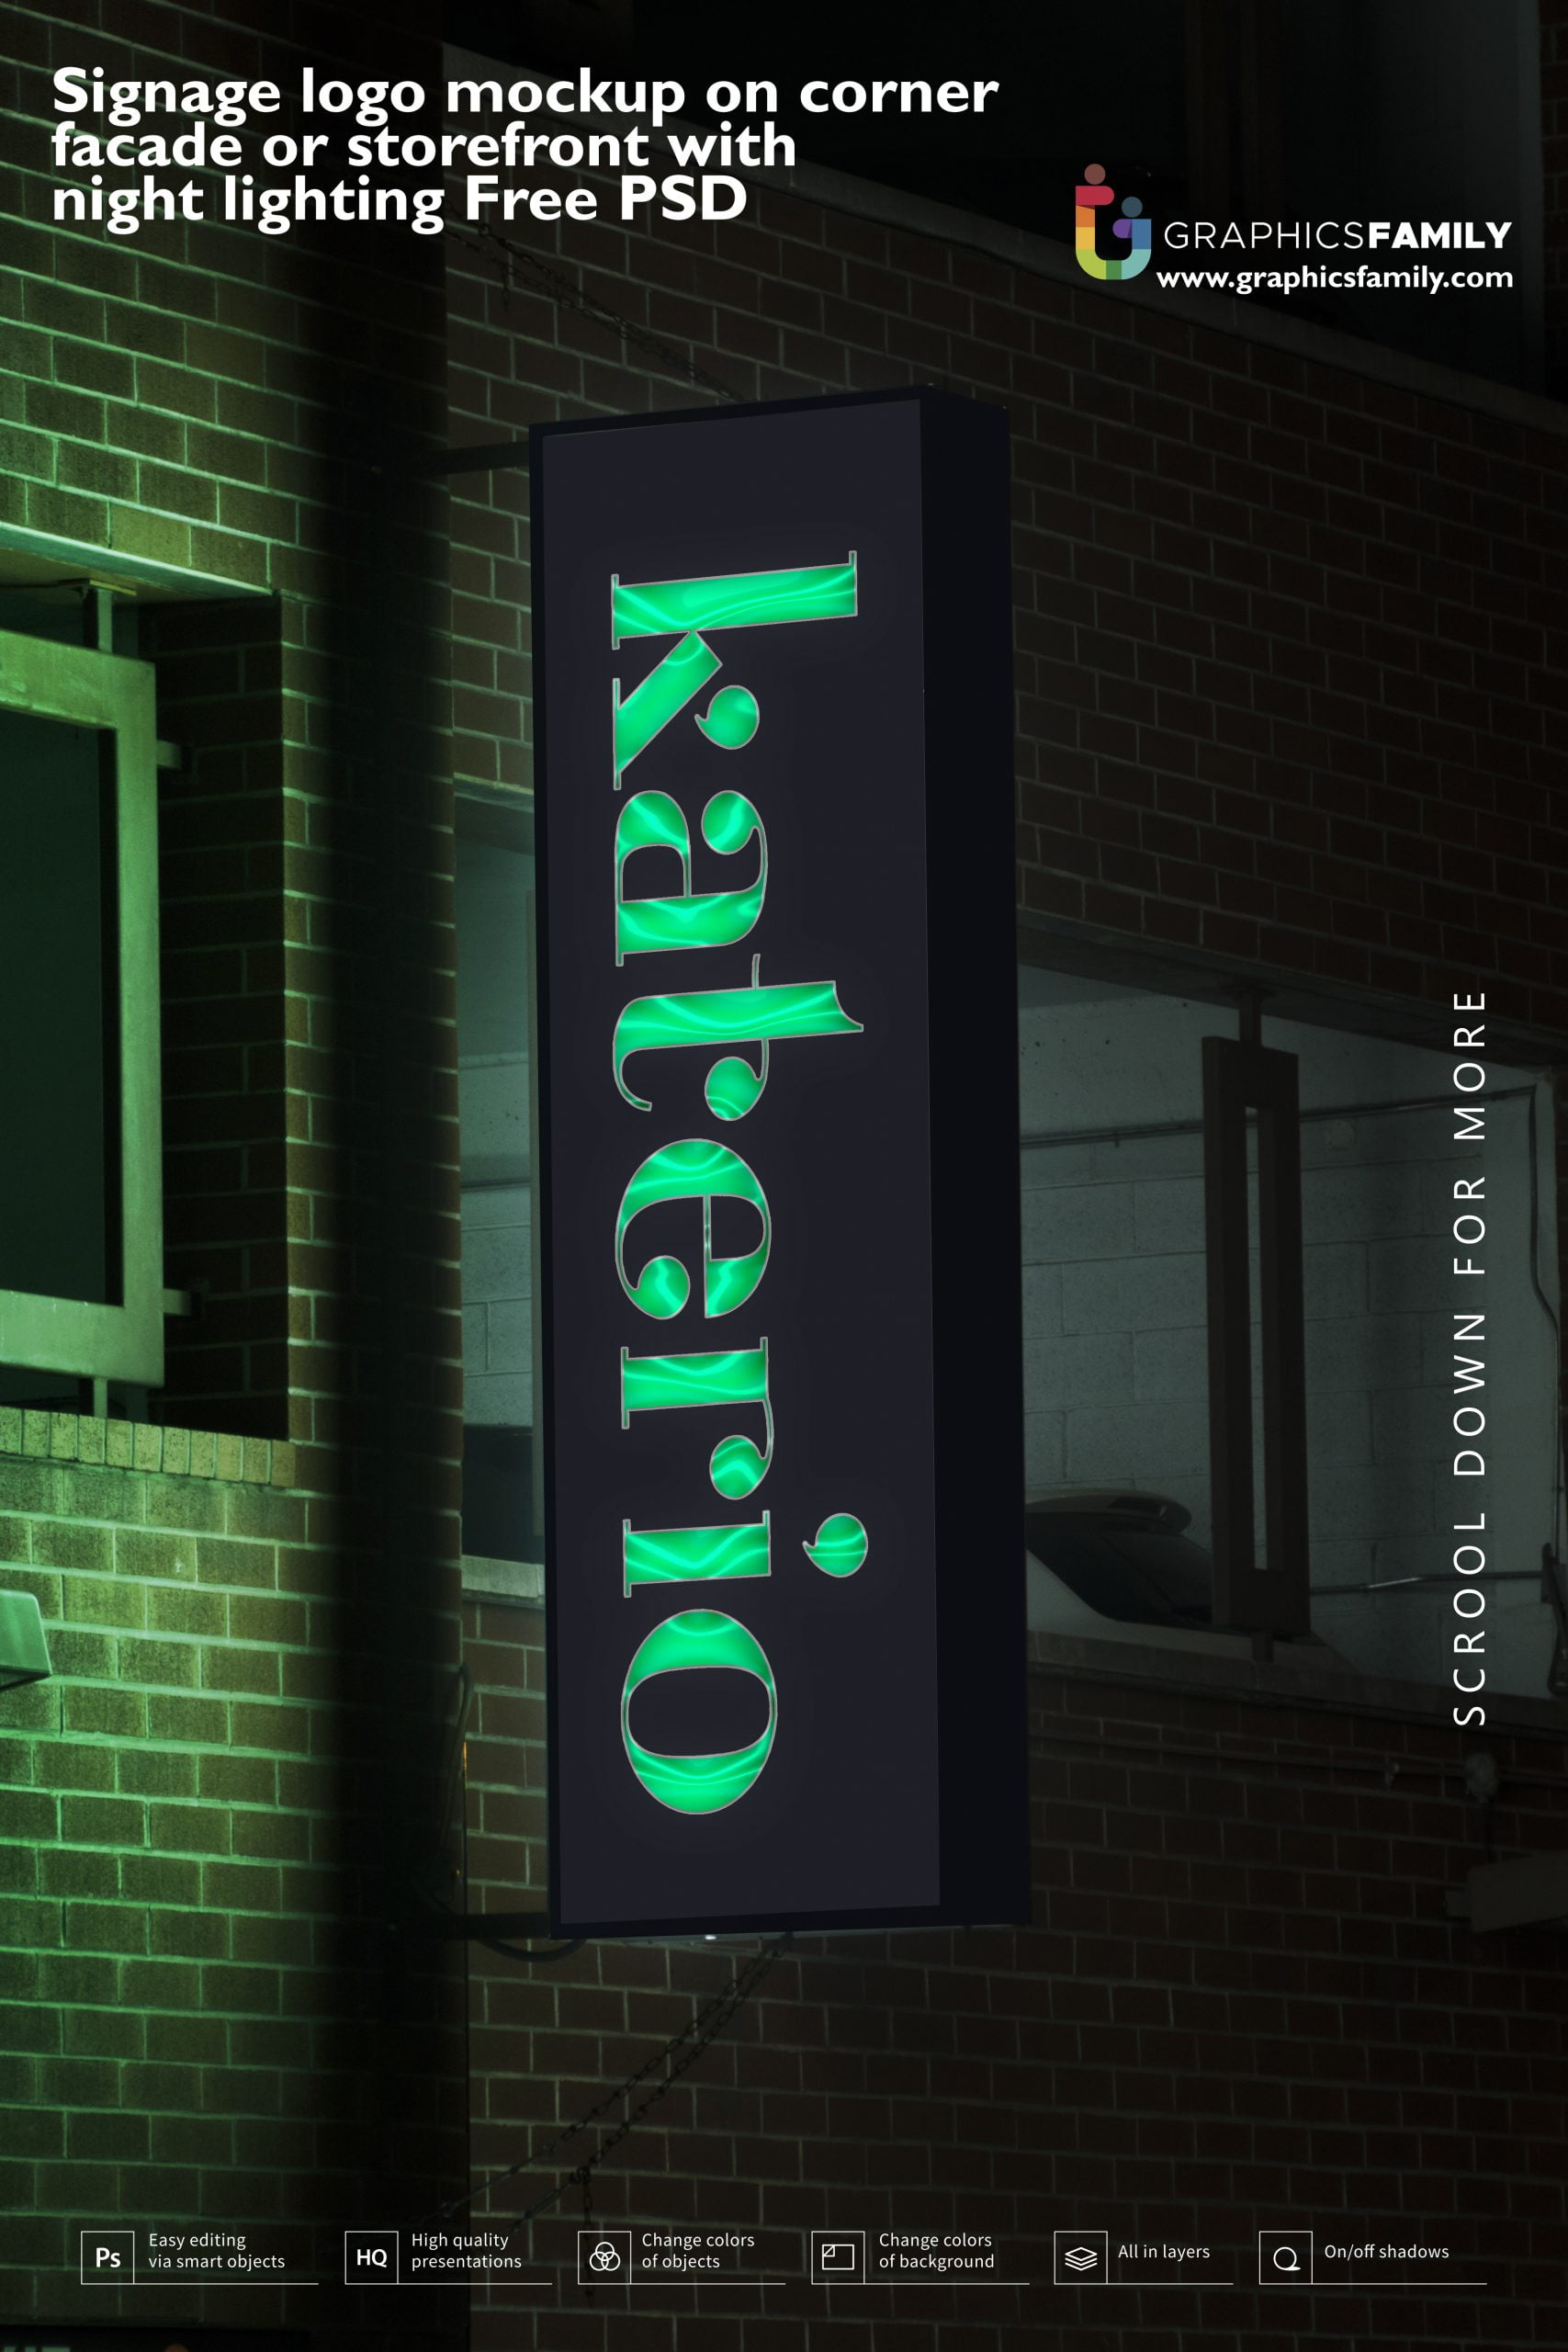 Signage logo mockup on corner facade or storefront with night lighting Free PSD